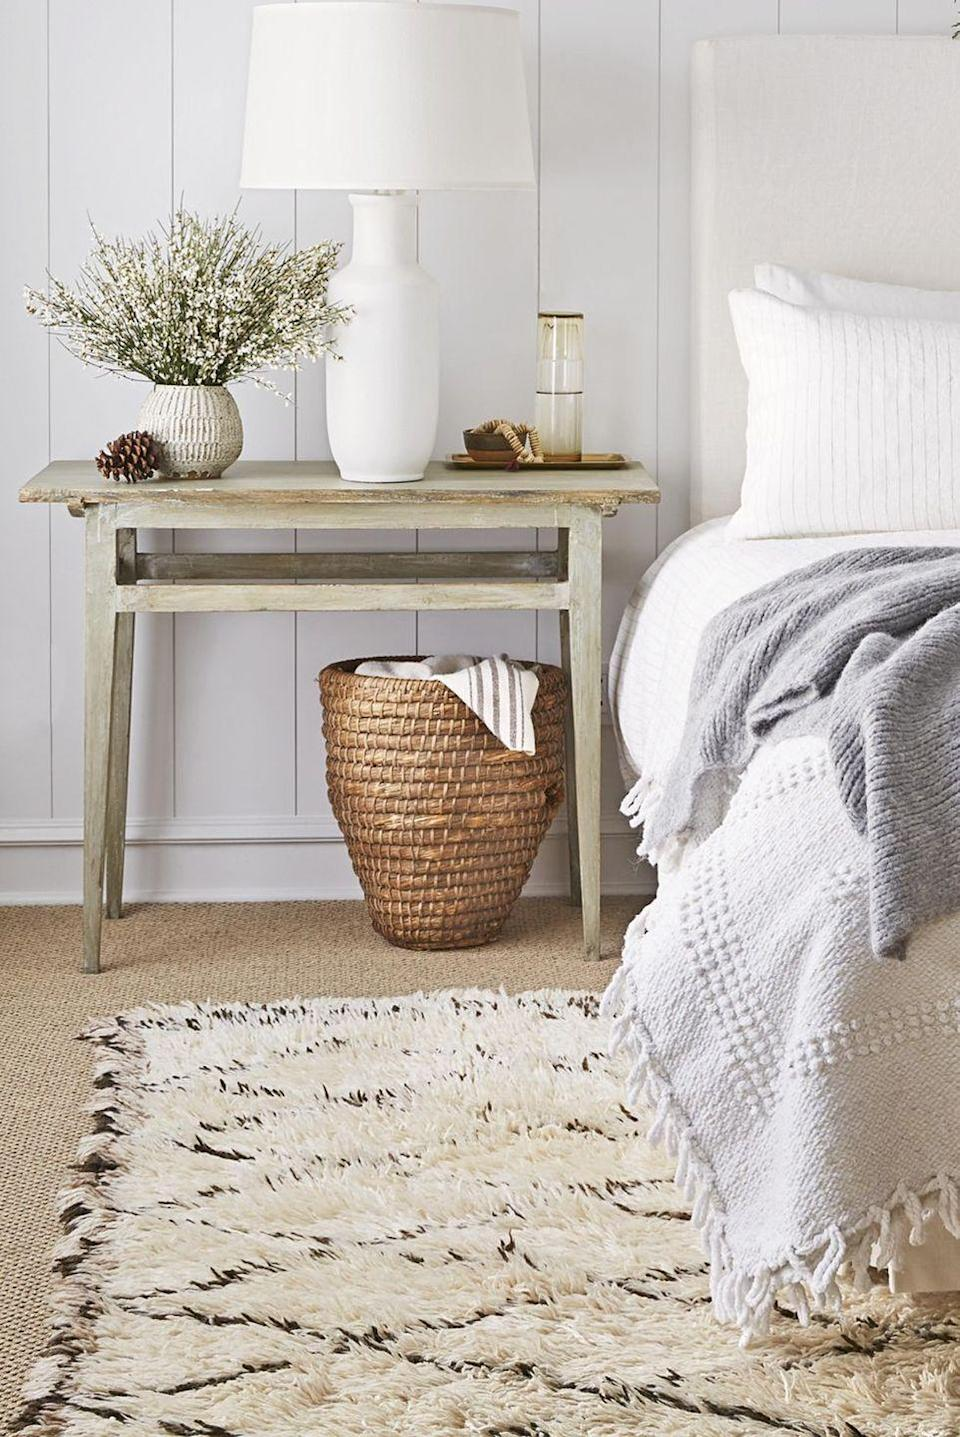 <p>A foolproof way to brighten up your home for spring is to go all-white. If that's not possible, try adding airier elements instead — think sheer white curtains that let the light in, white linens, and fresh houseplants. </p>